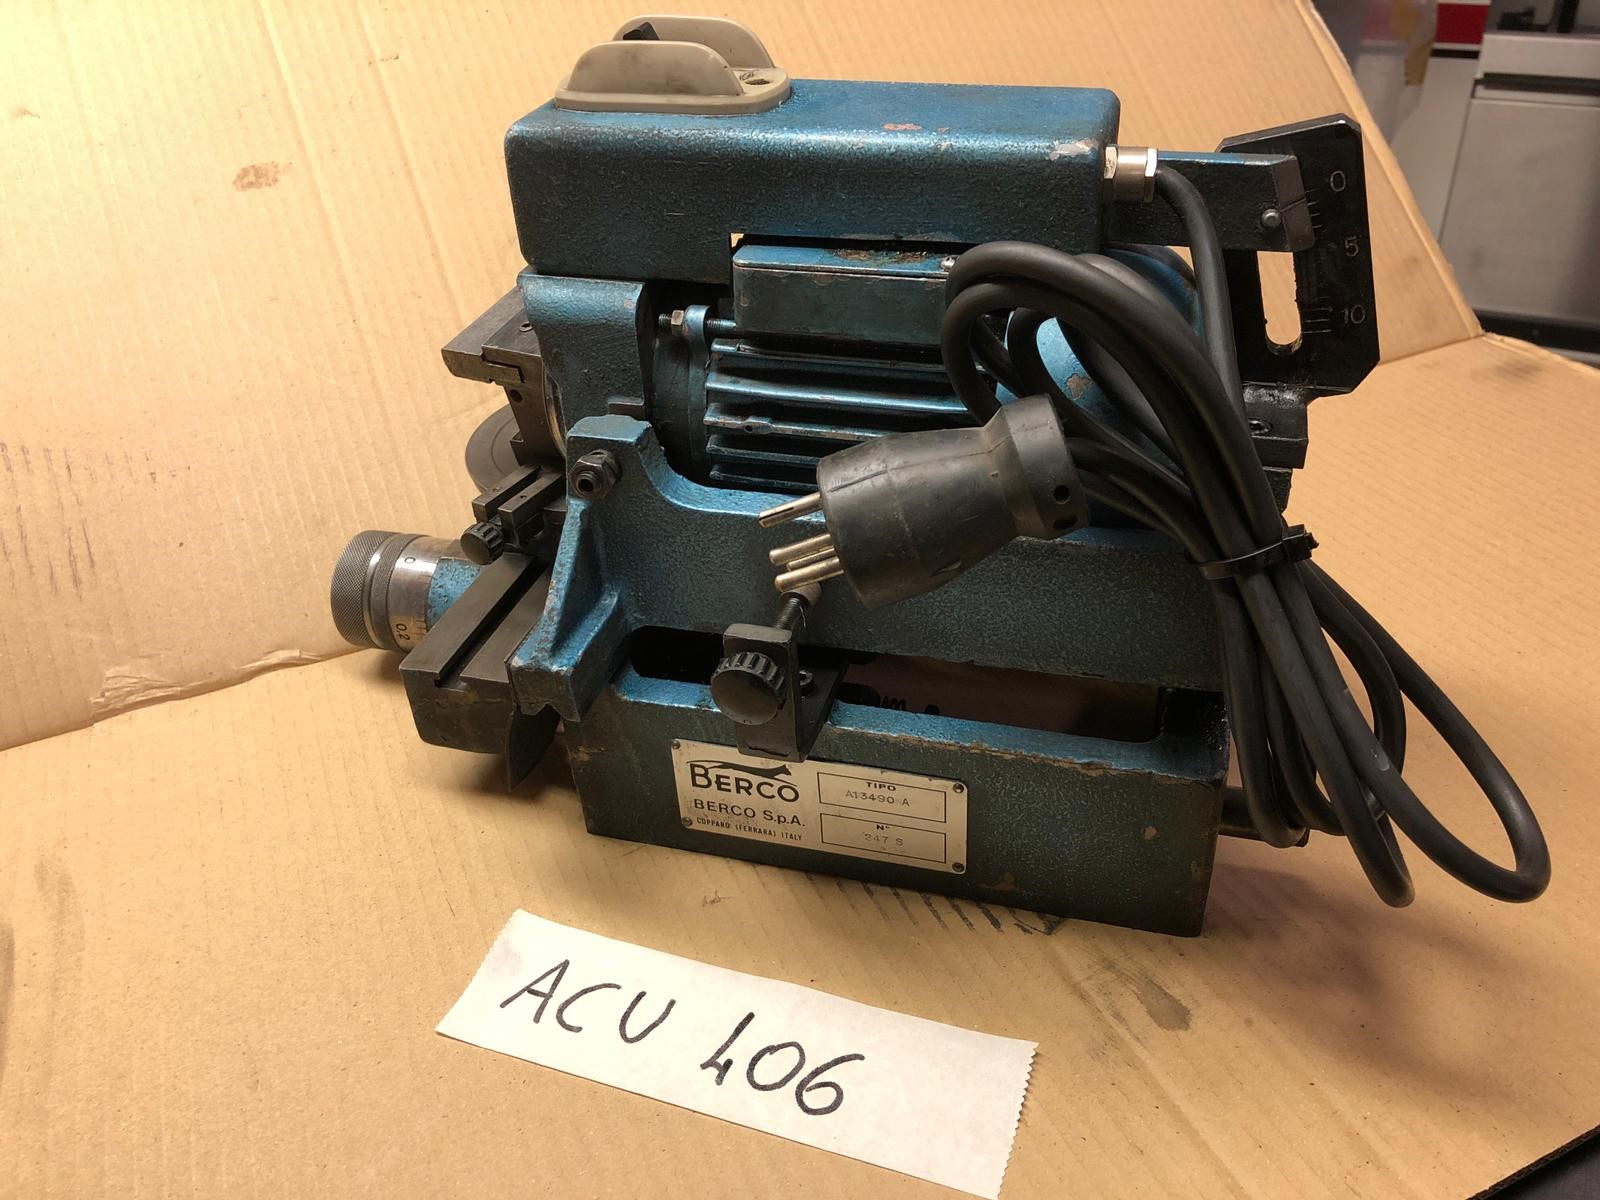 [ACU406] AFFILATORE TIPO A13490 A N247S